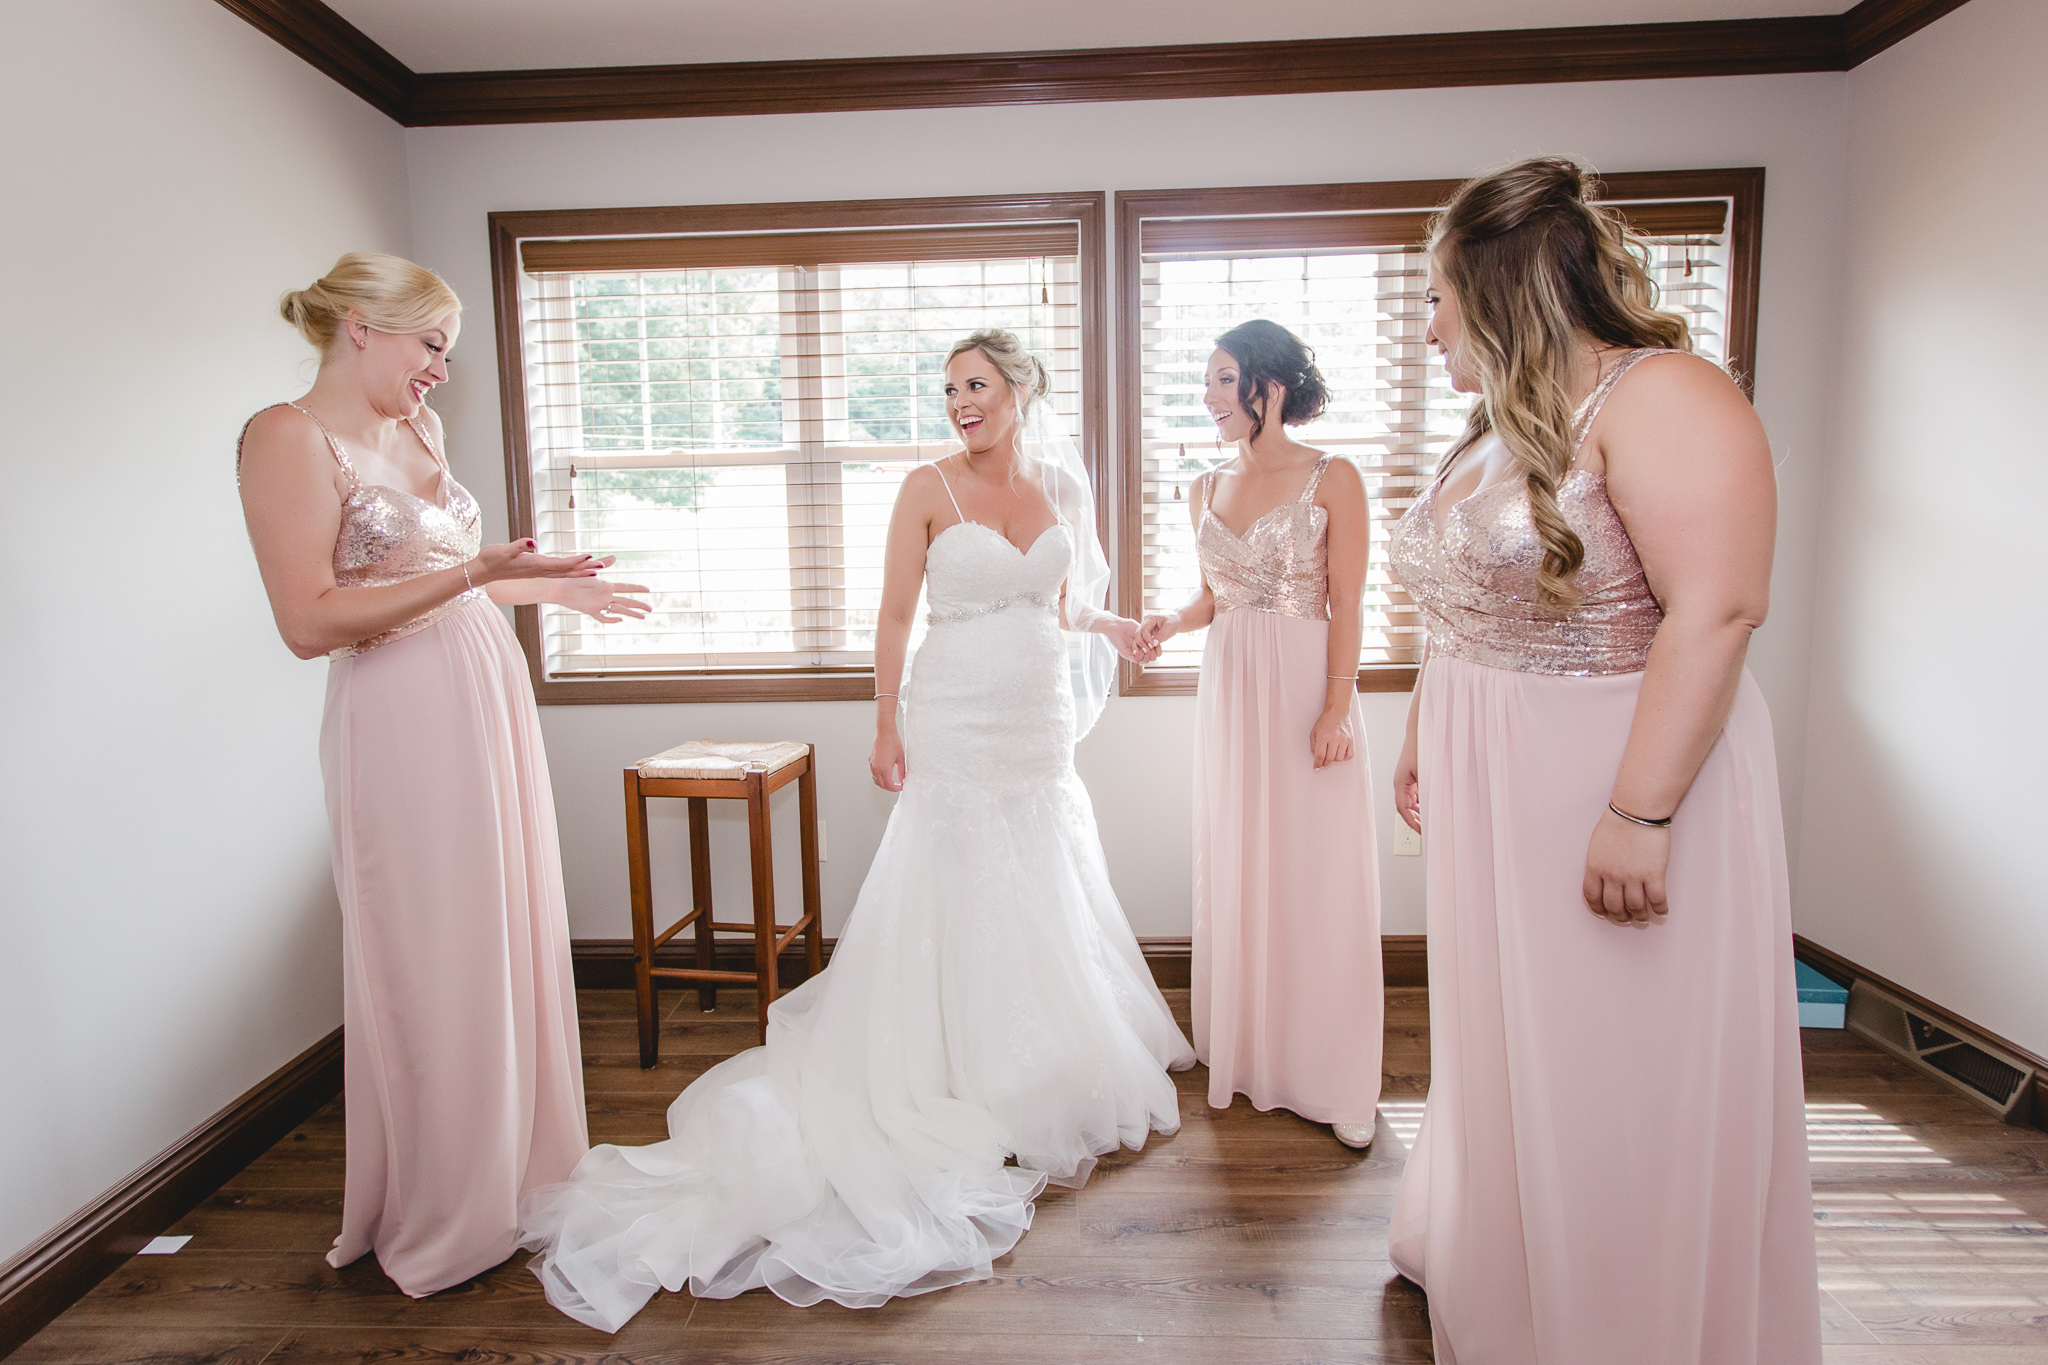 Bride smiles as her bridesmaids see her in her dress